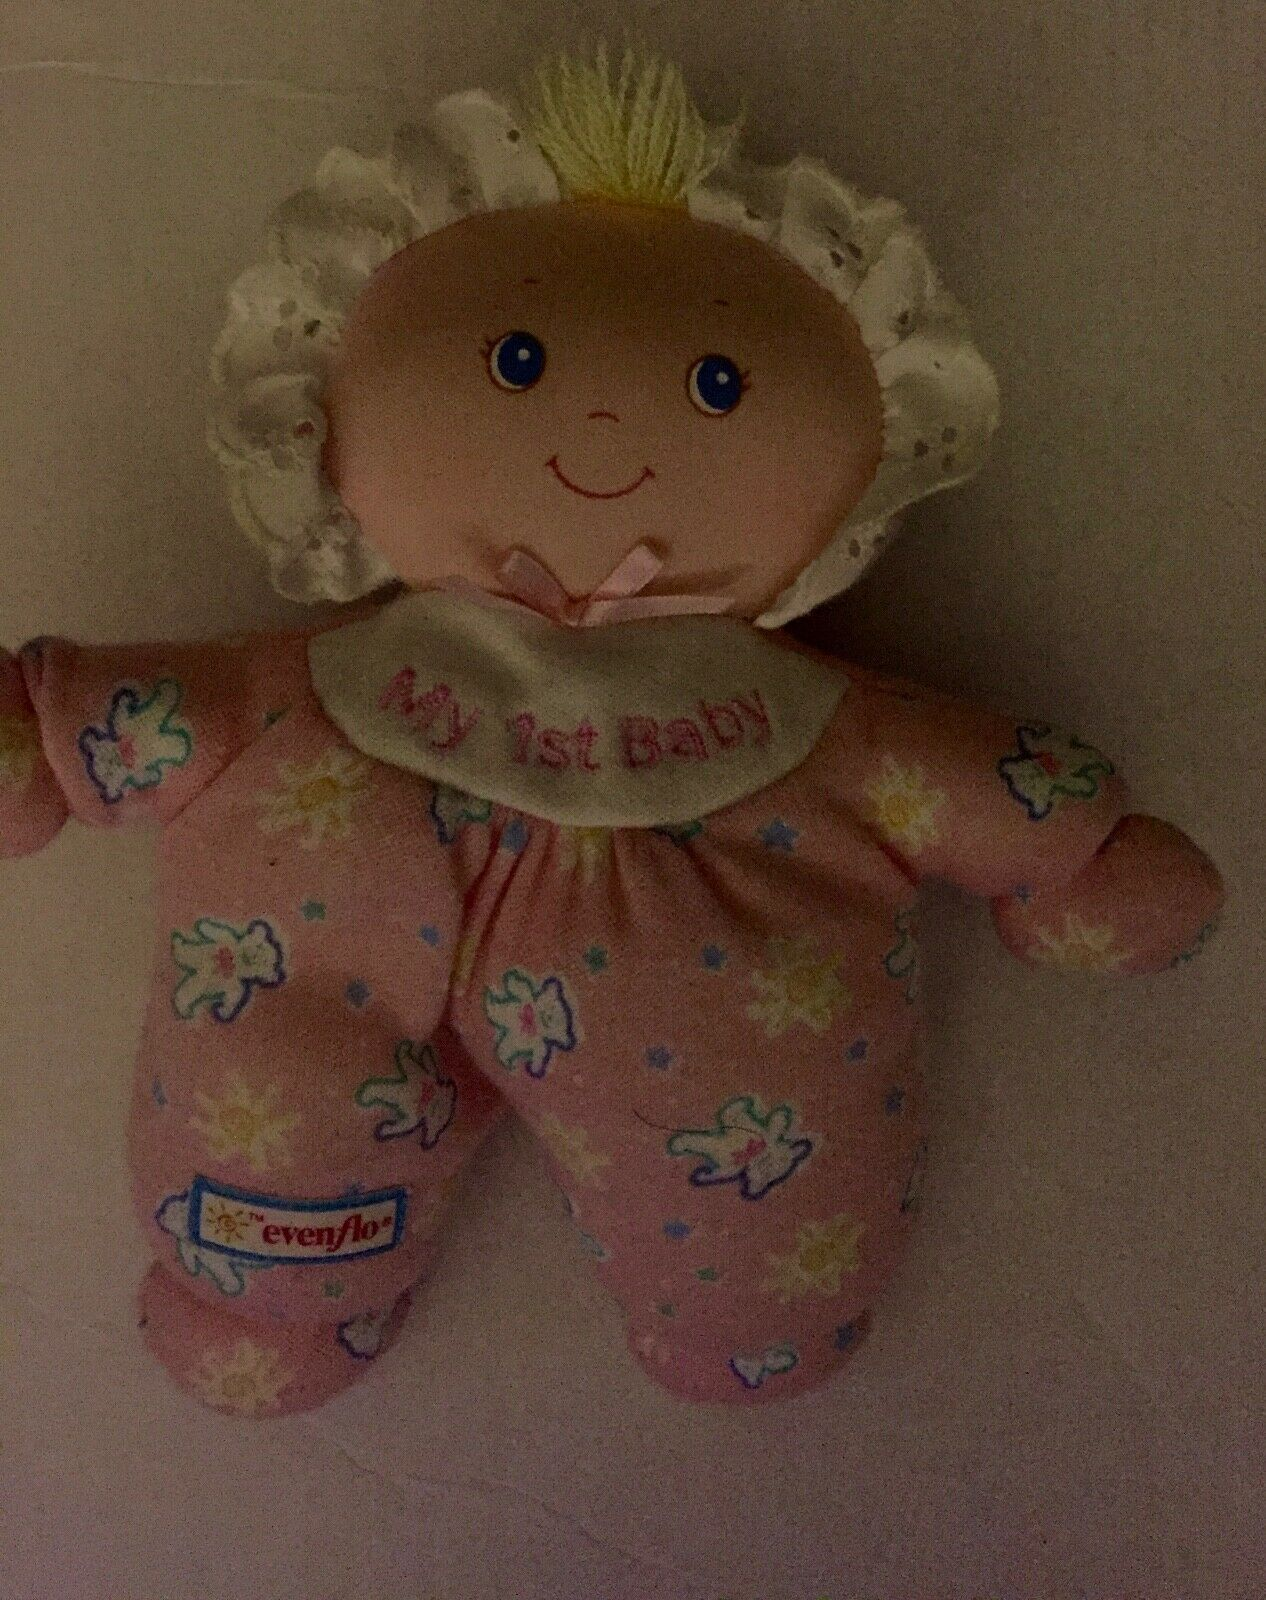 Evenflo My 1st baby soft doll in Pink teddy bear and flower outfit eyelet Bonnet - $29.69